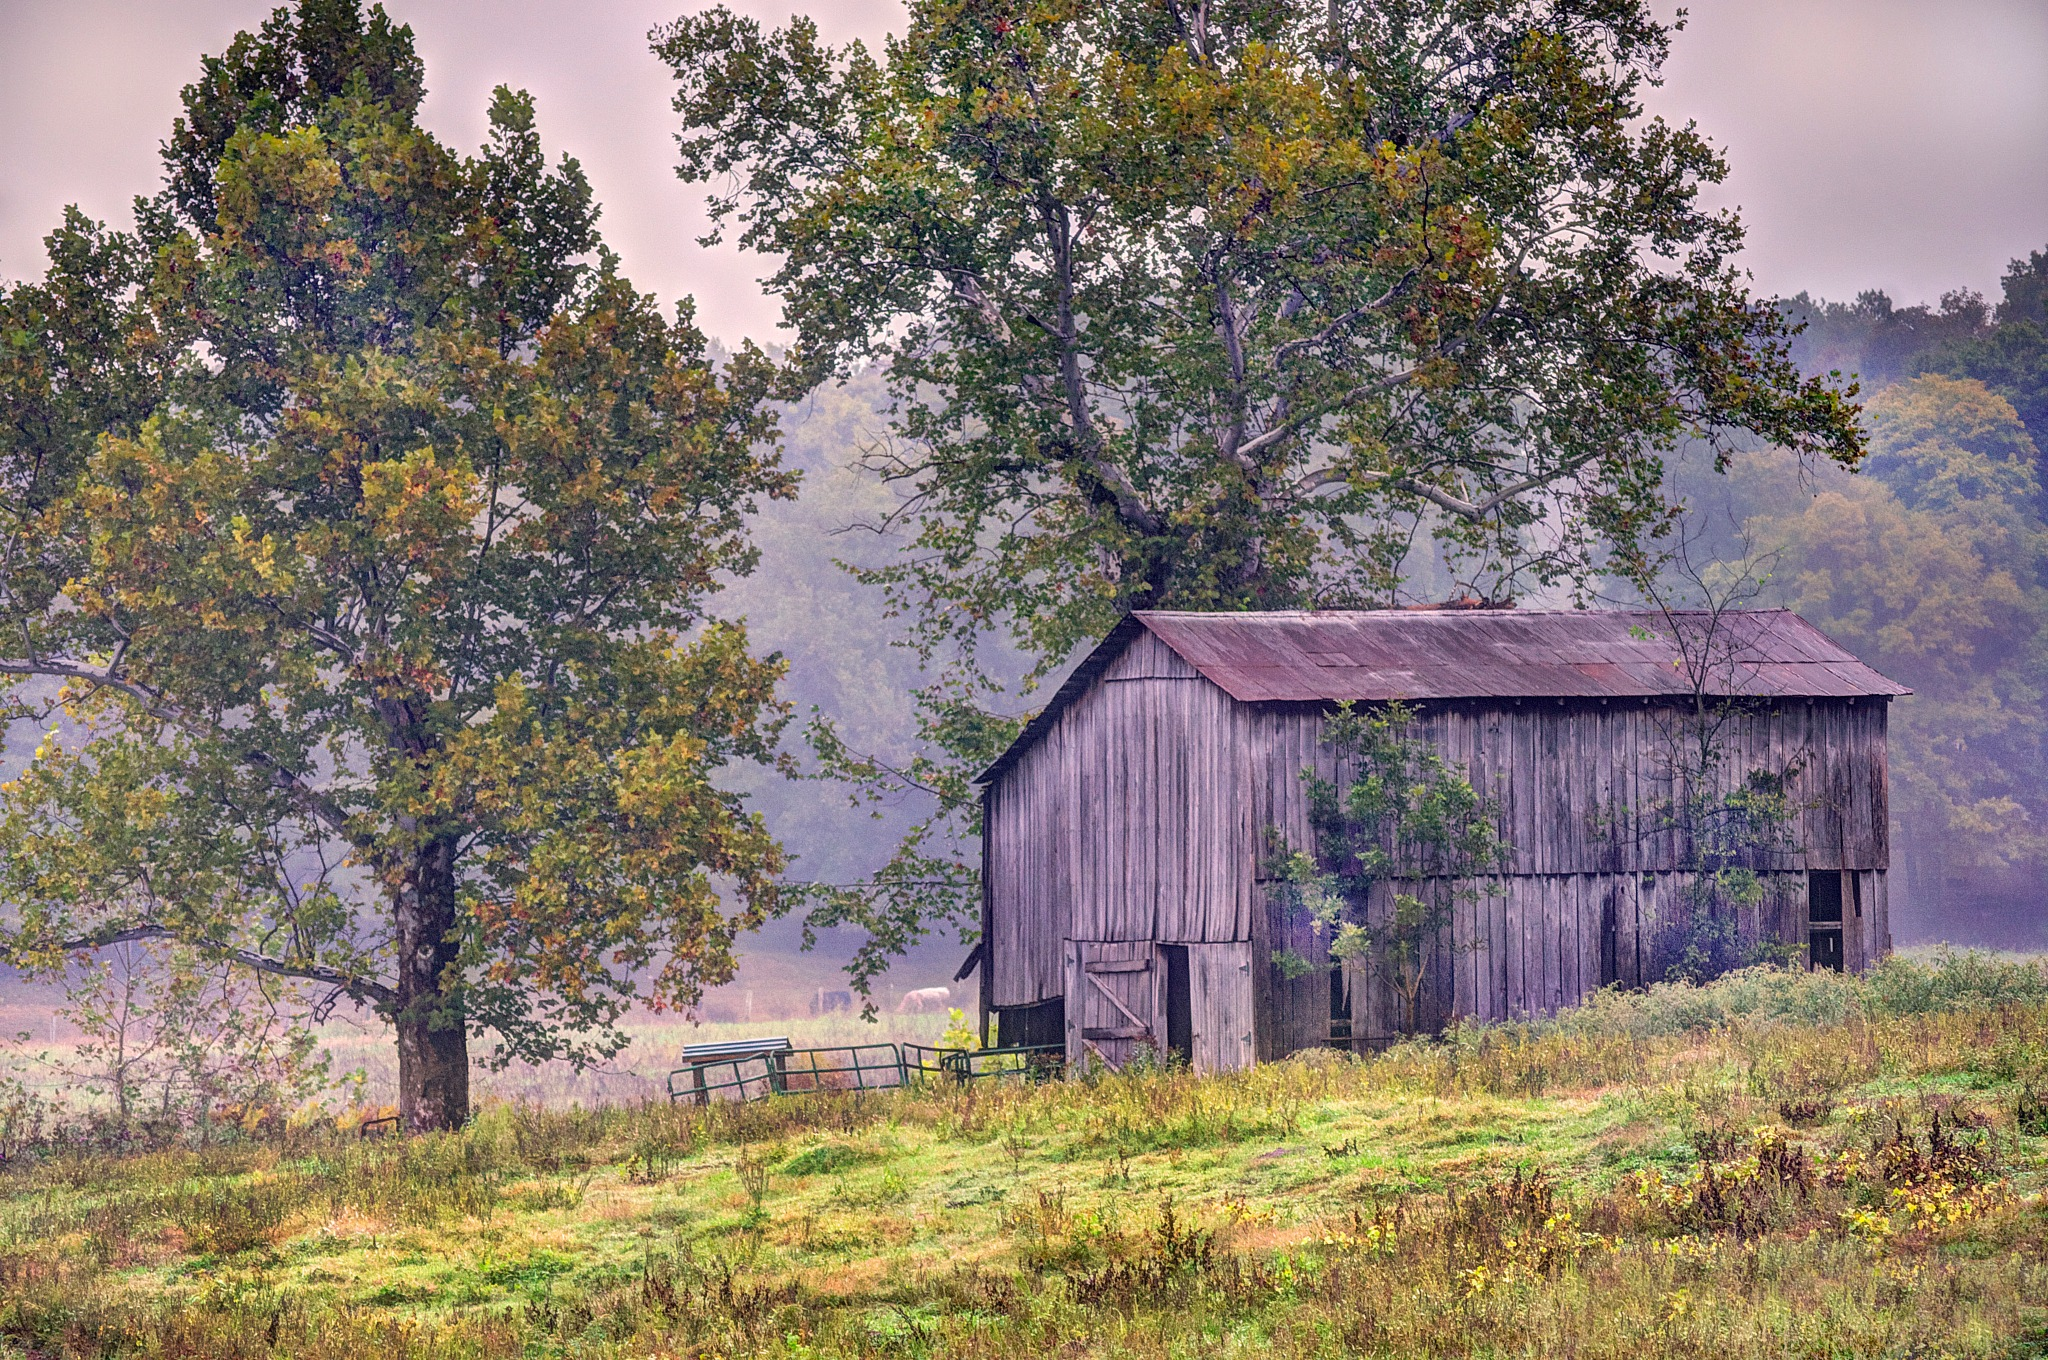 Barn in the Mist by J. Philip Larson Photography